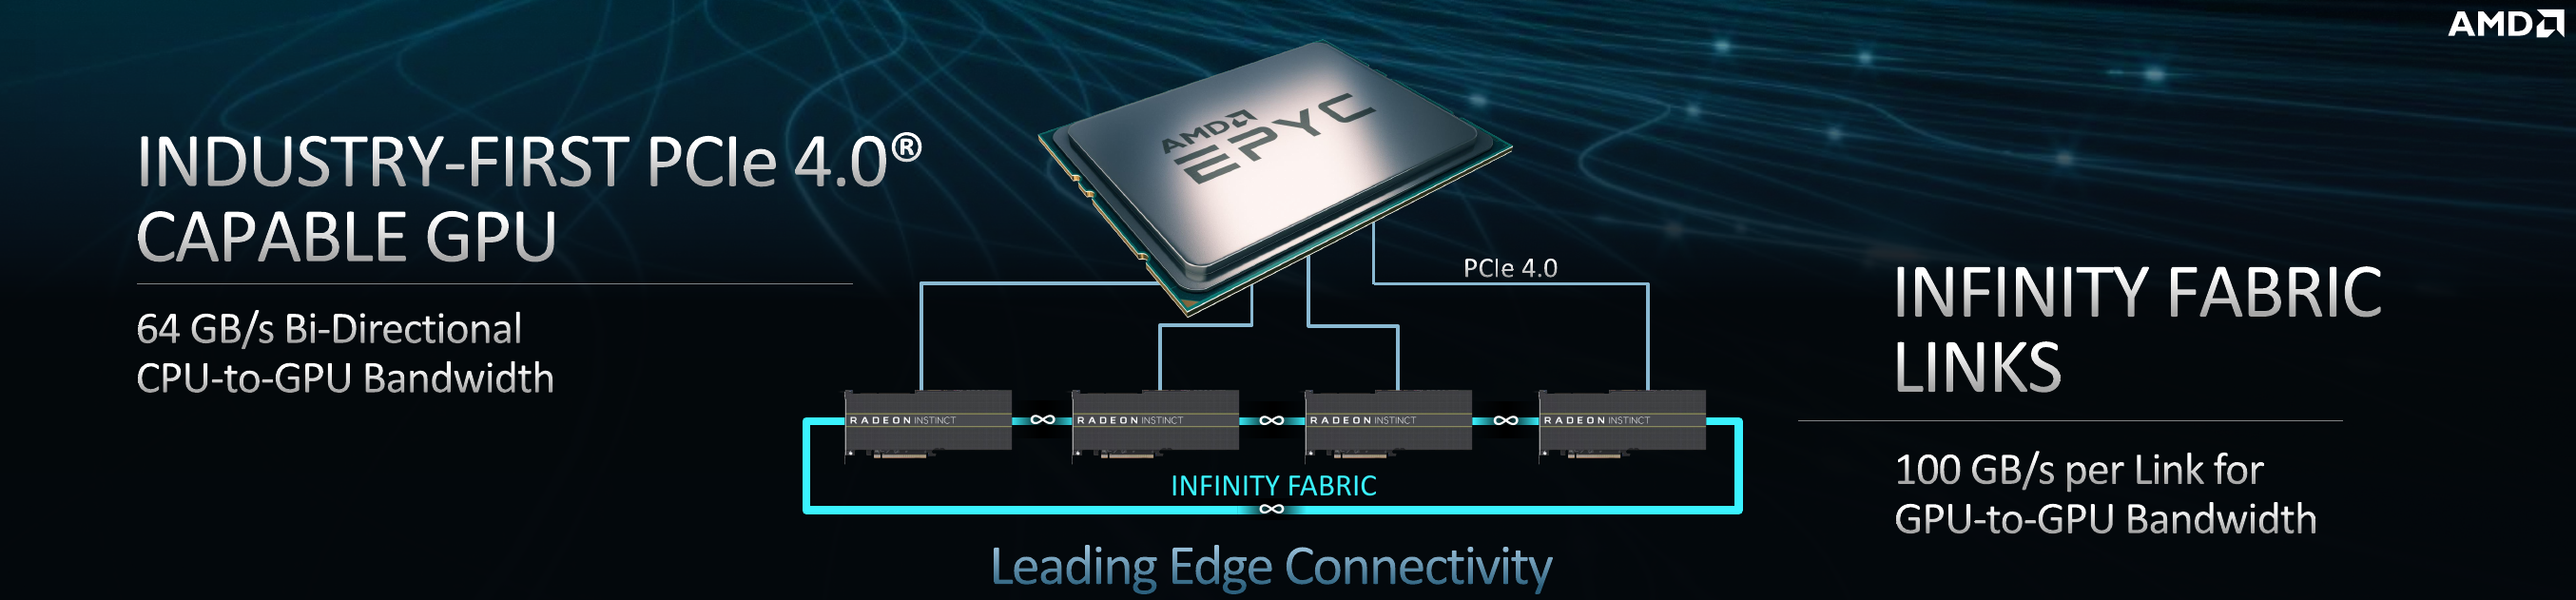 Amd Discloses Initial Zen 2 Details Wikichip Fuse